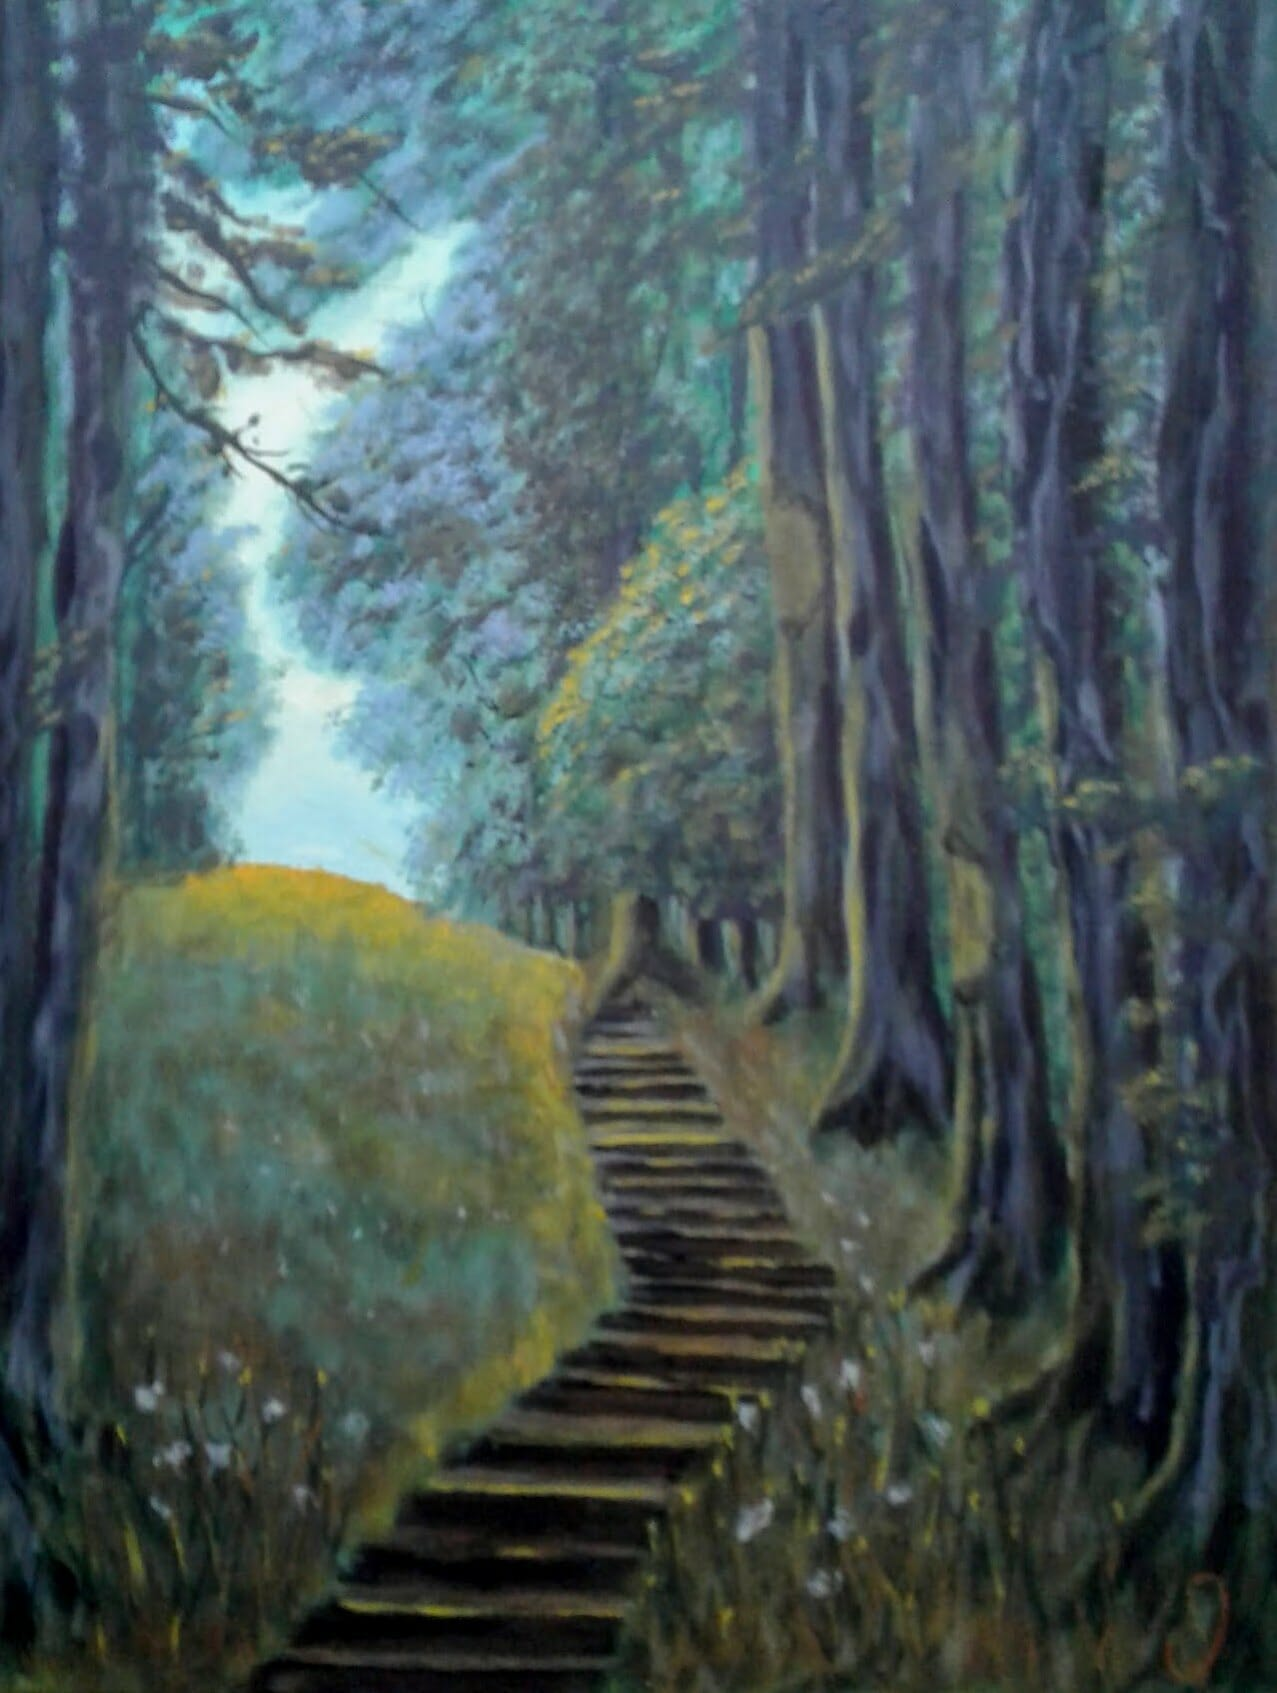 Stairs In A Forest Image